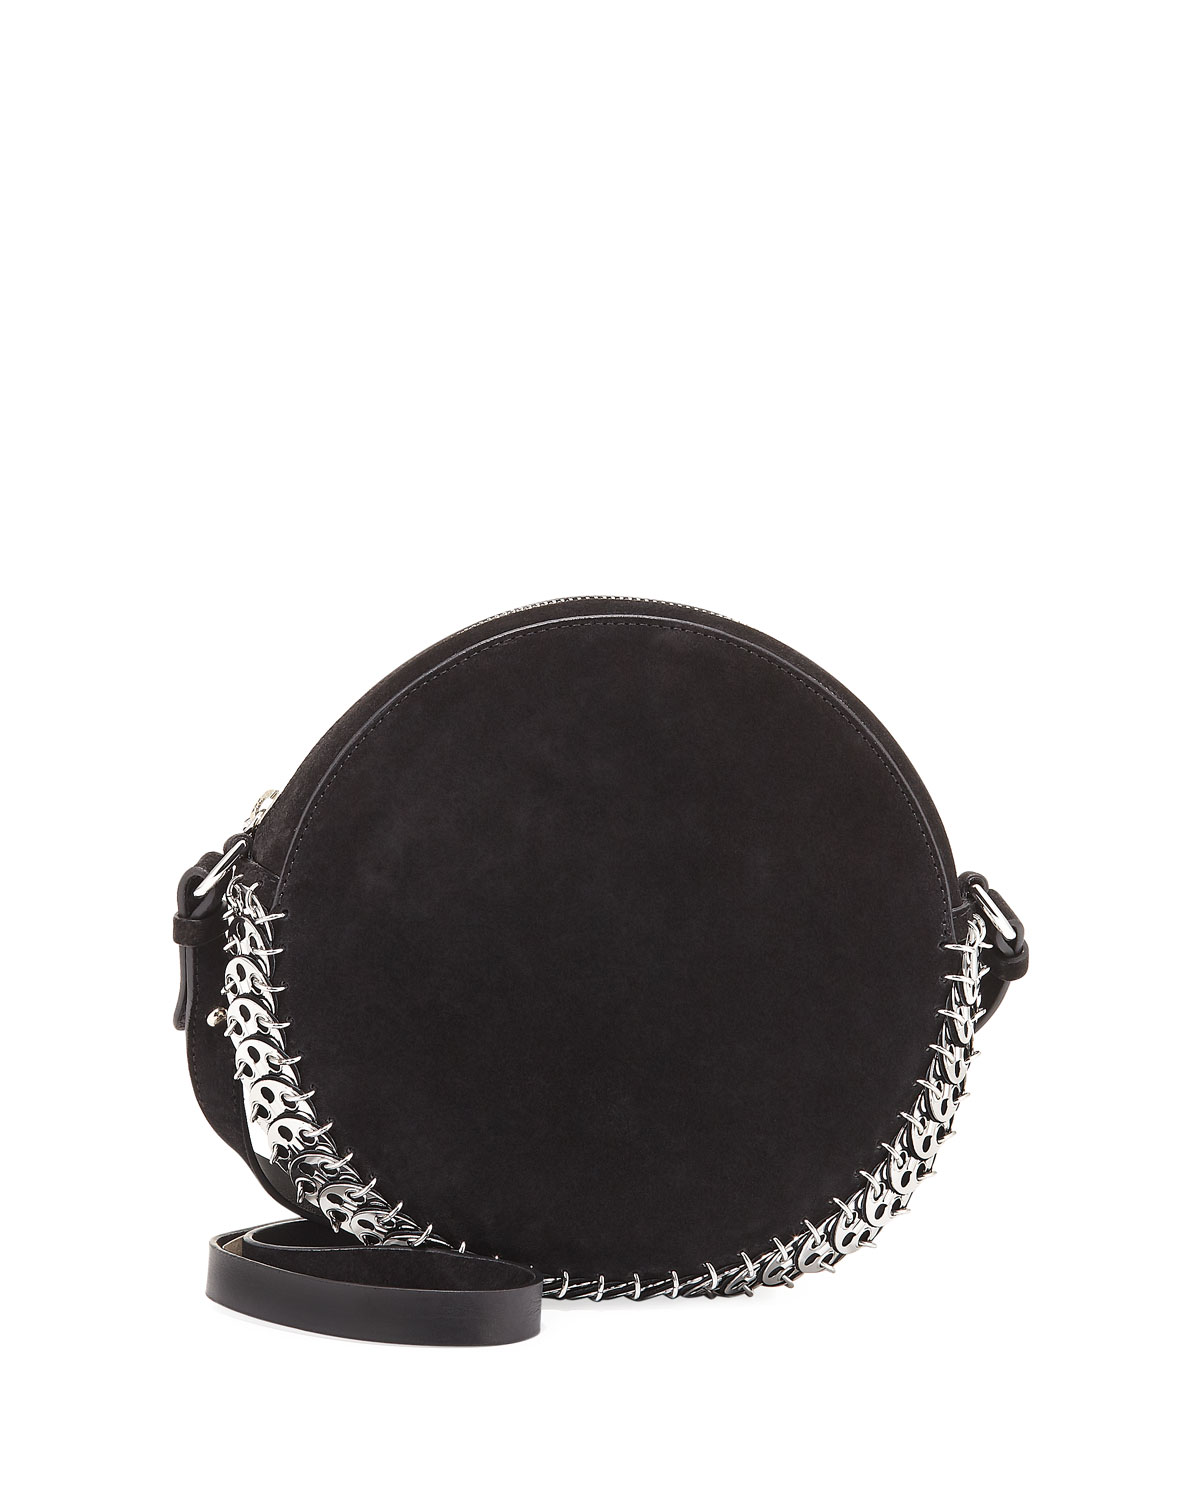 14#02 Suede Circle Bag, Black